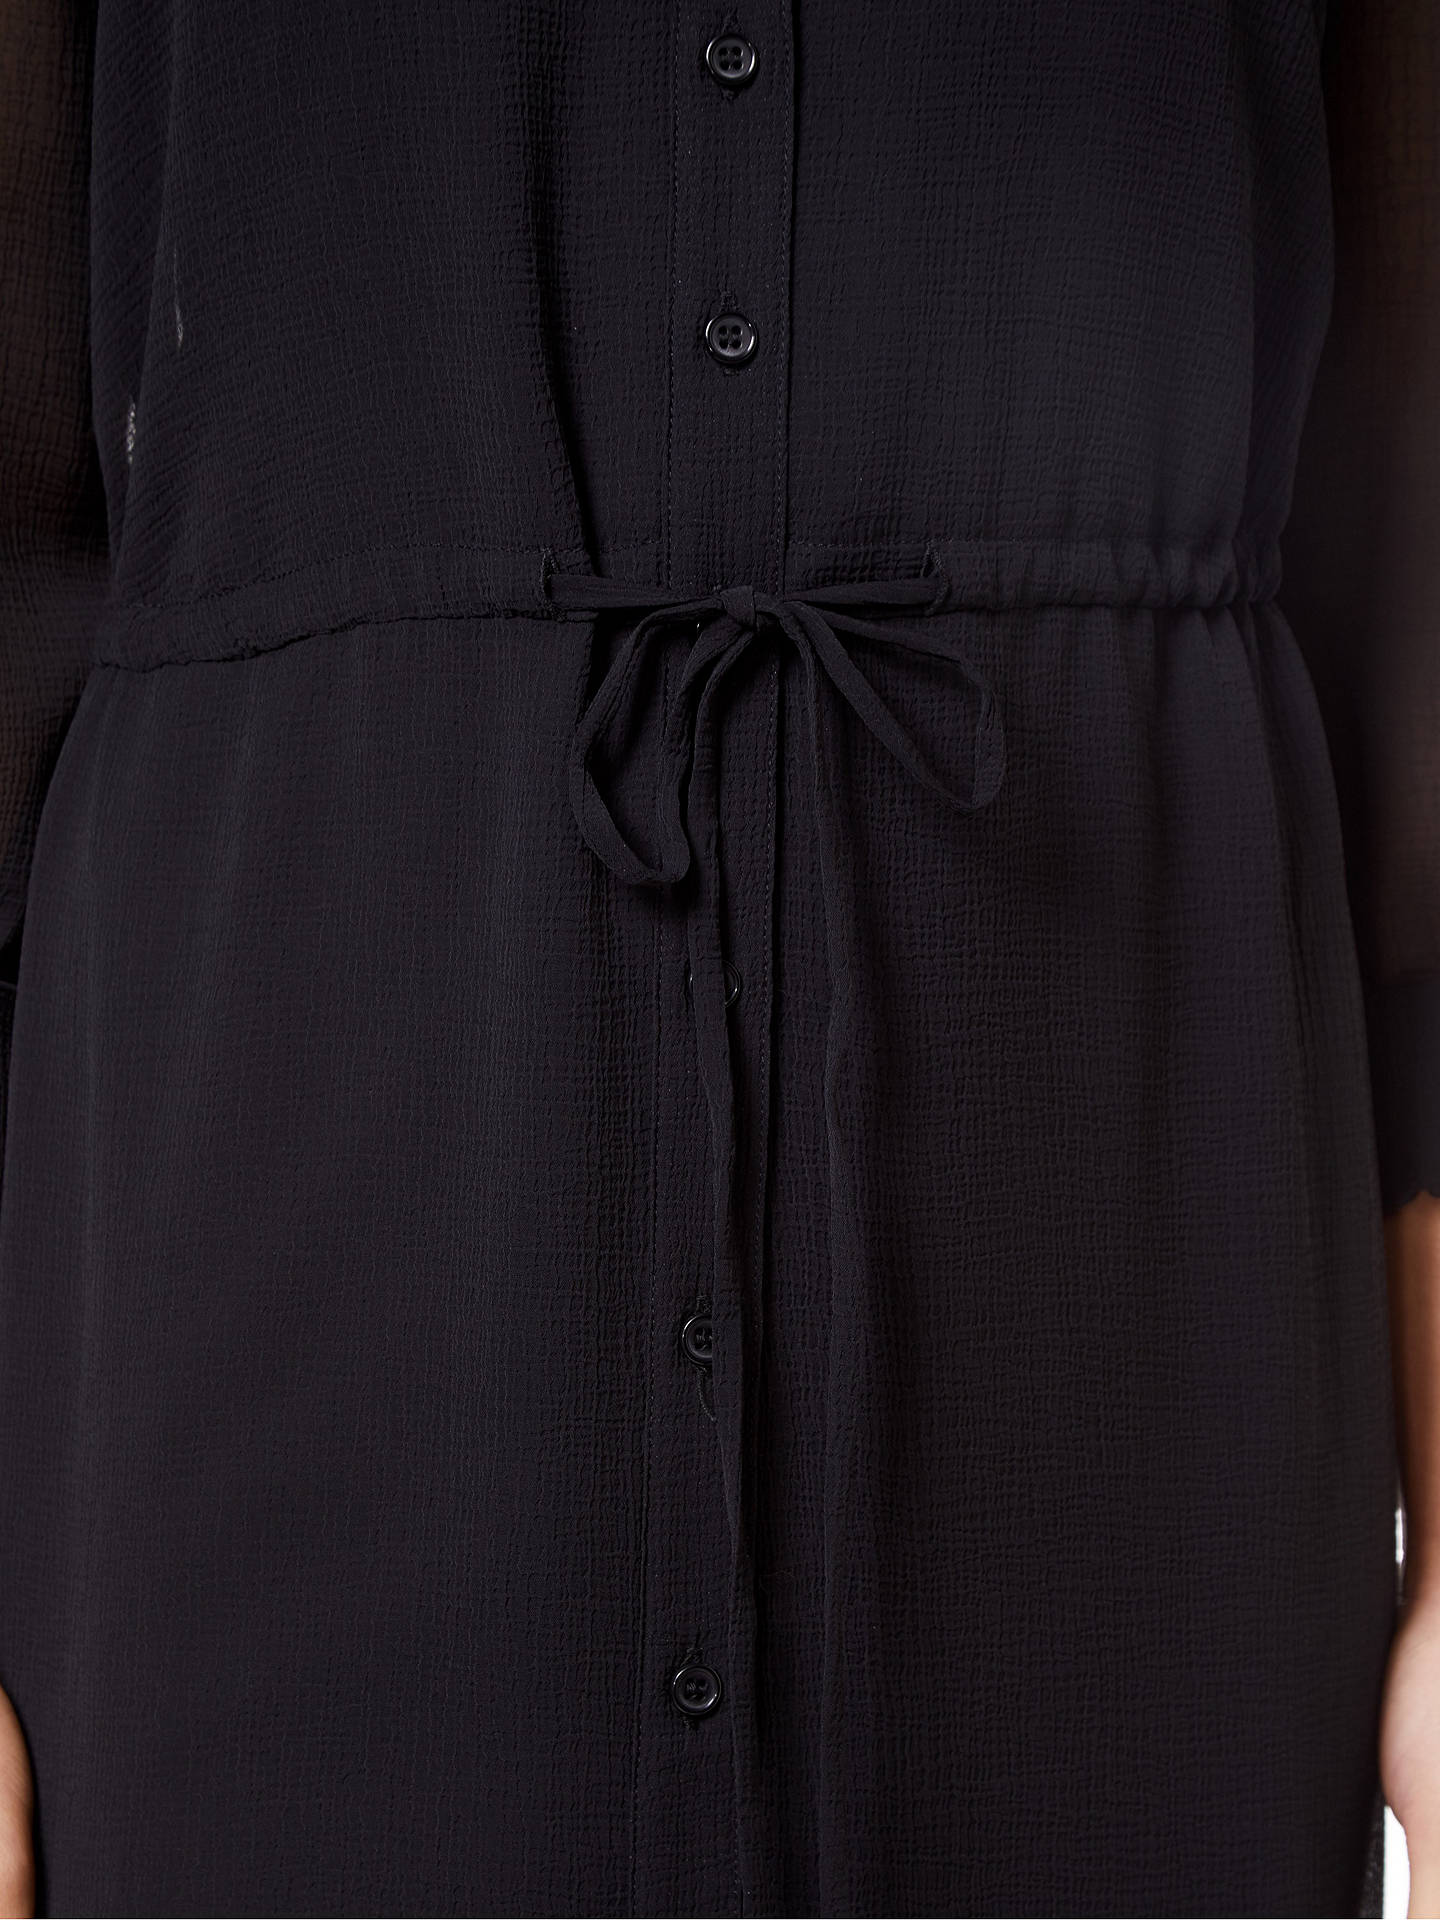 BuyAdrianna Papell Spider Maxi Dress, Black, 6 Online at johnlewis.com